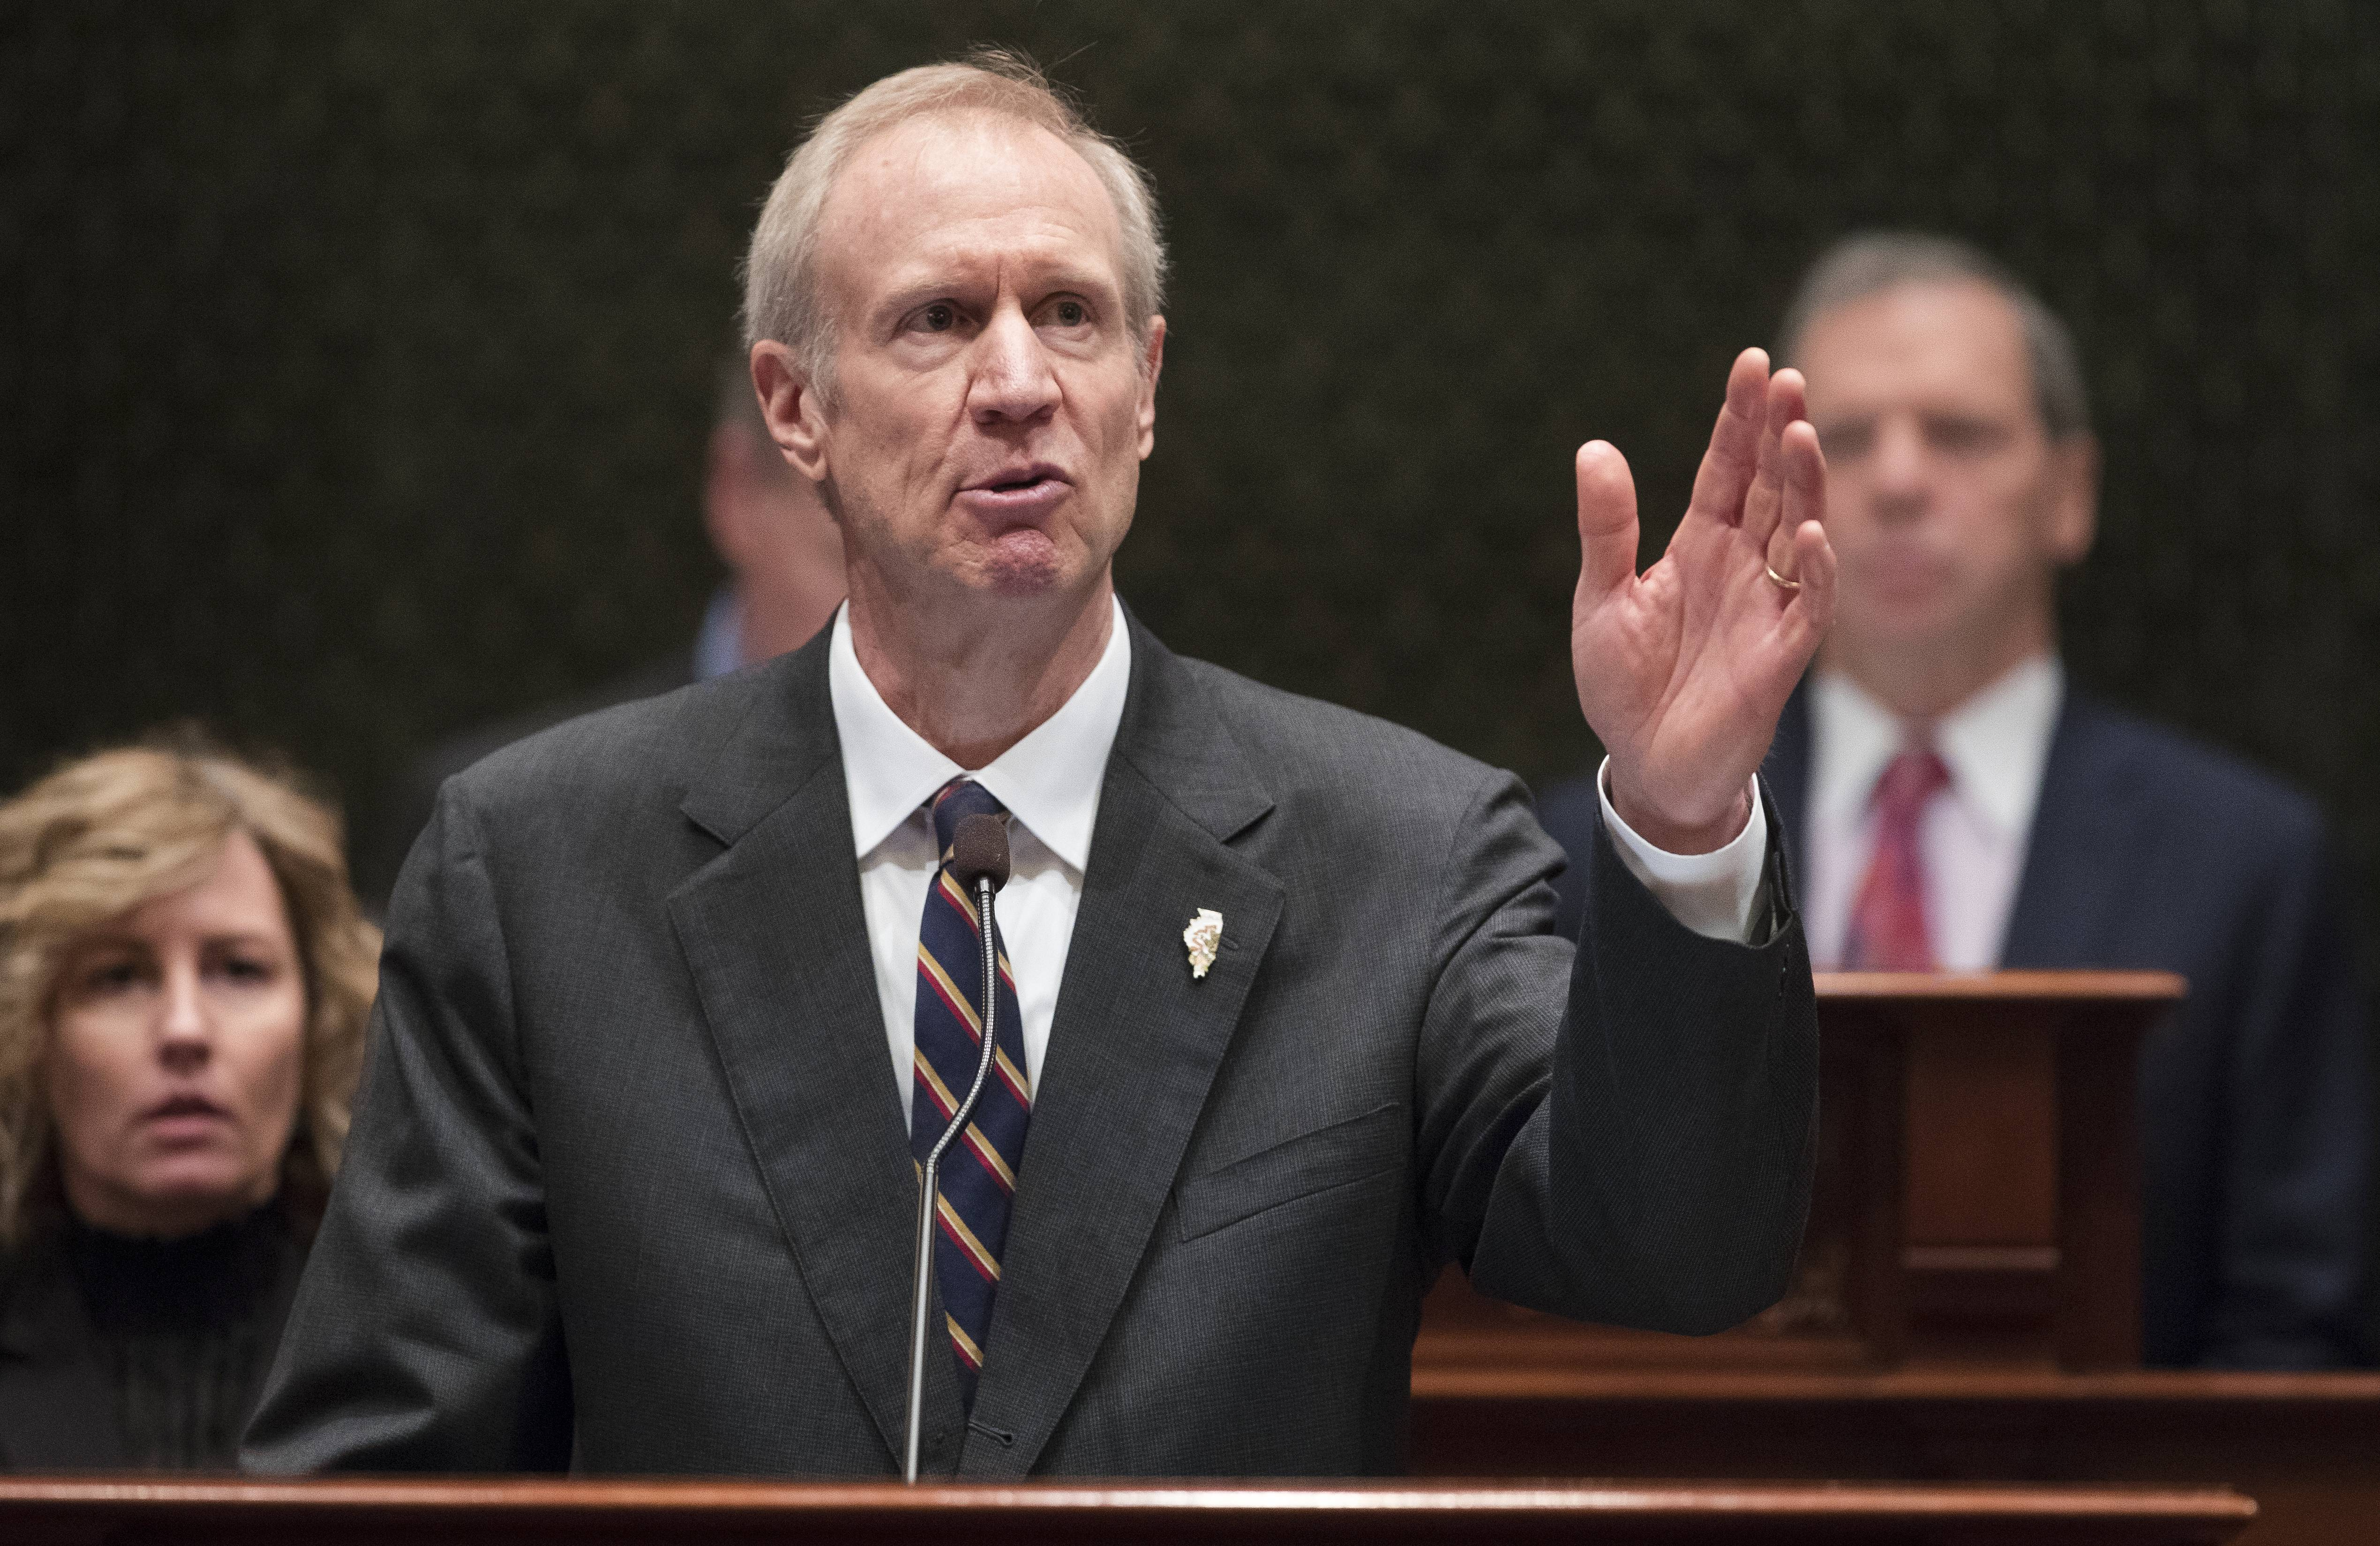 Illinois Gov. Bruce Rauner delivers his State of the State address in the Illinois House chamber last January in Springfield.